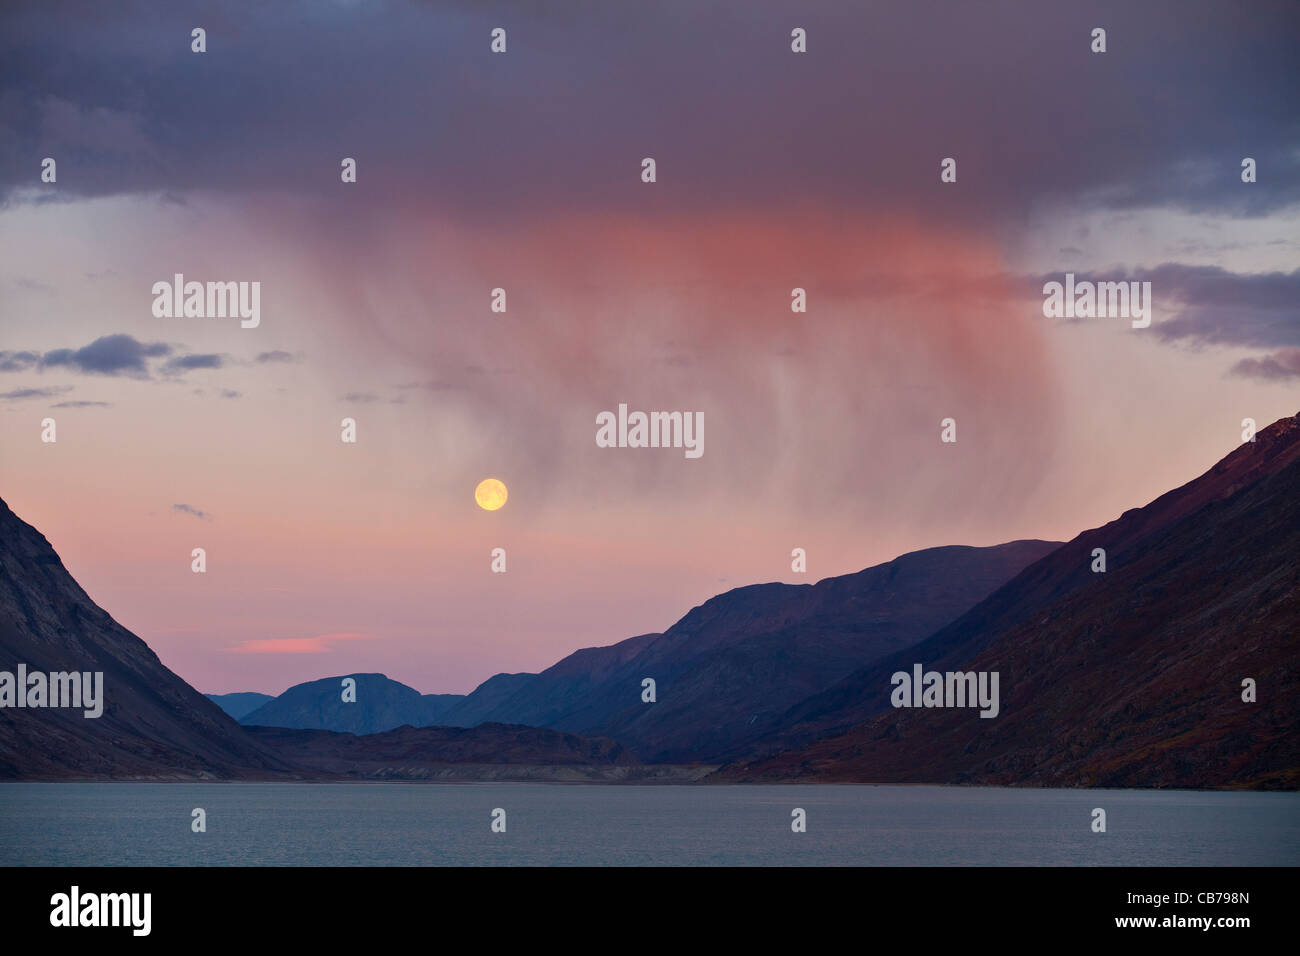 Storm clouds and full moon over Kangerlussuaq, also known as Söndre Strömfjord, one of the world's longest - Stock Image